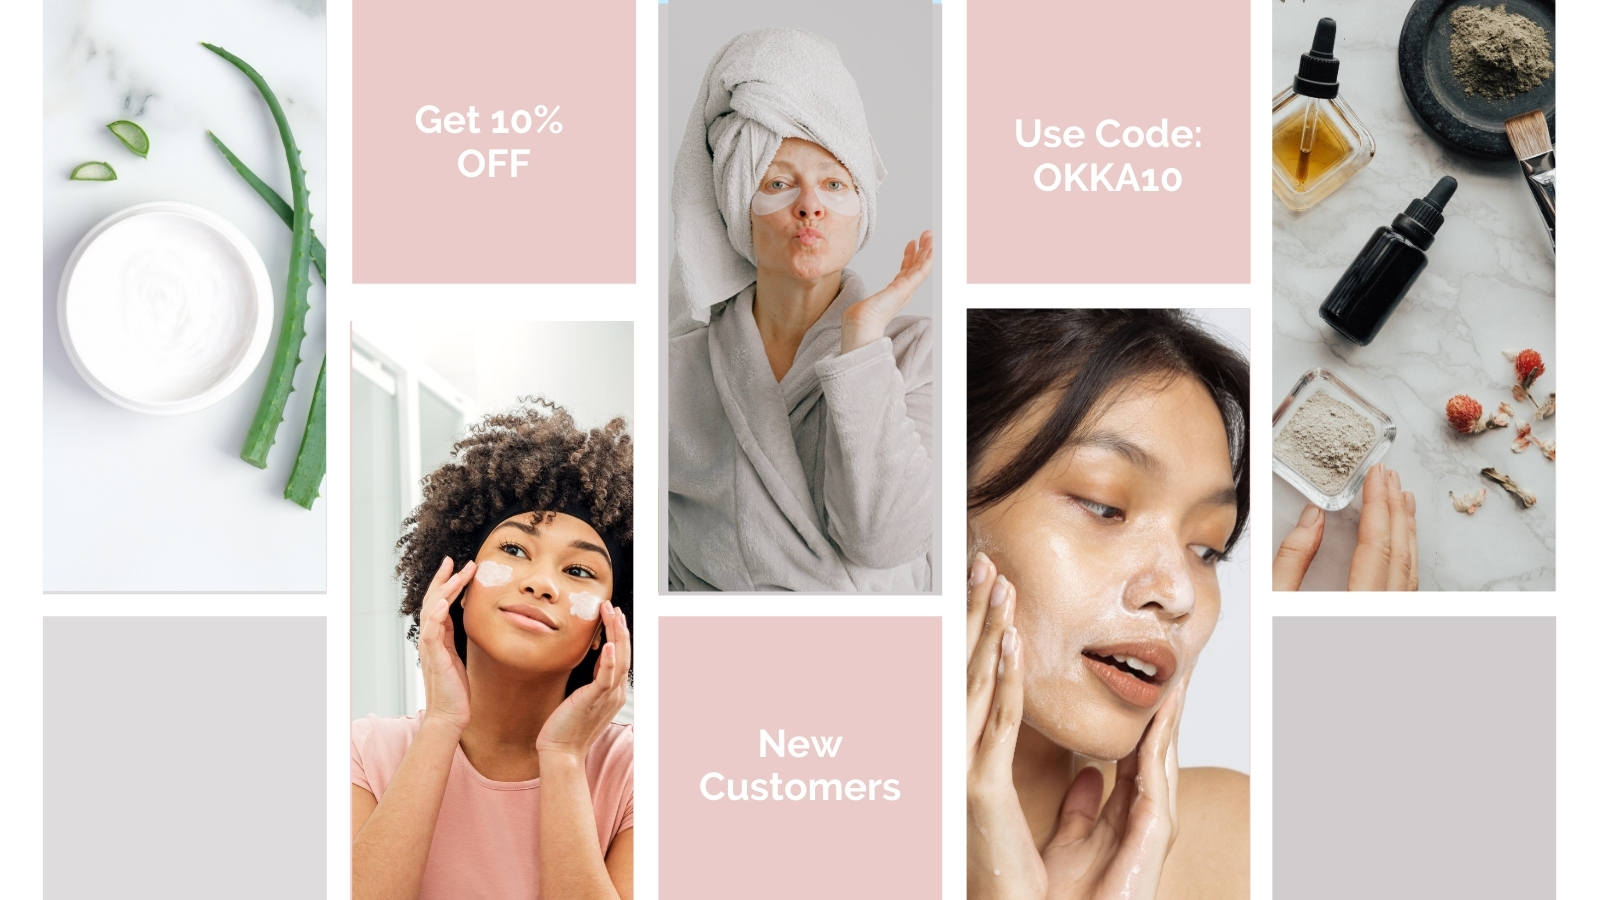 10% OFF FOR NEW CUSTOMER